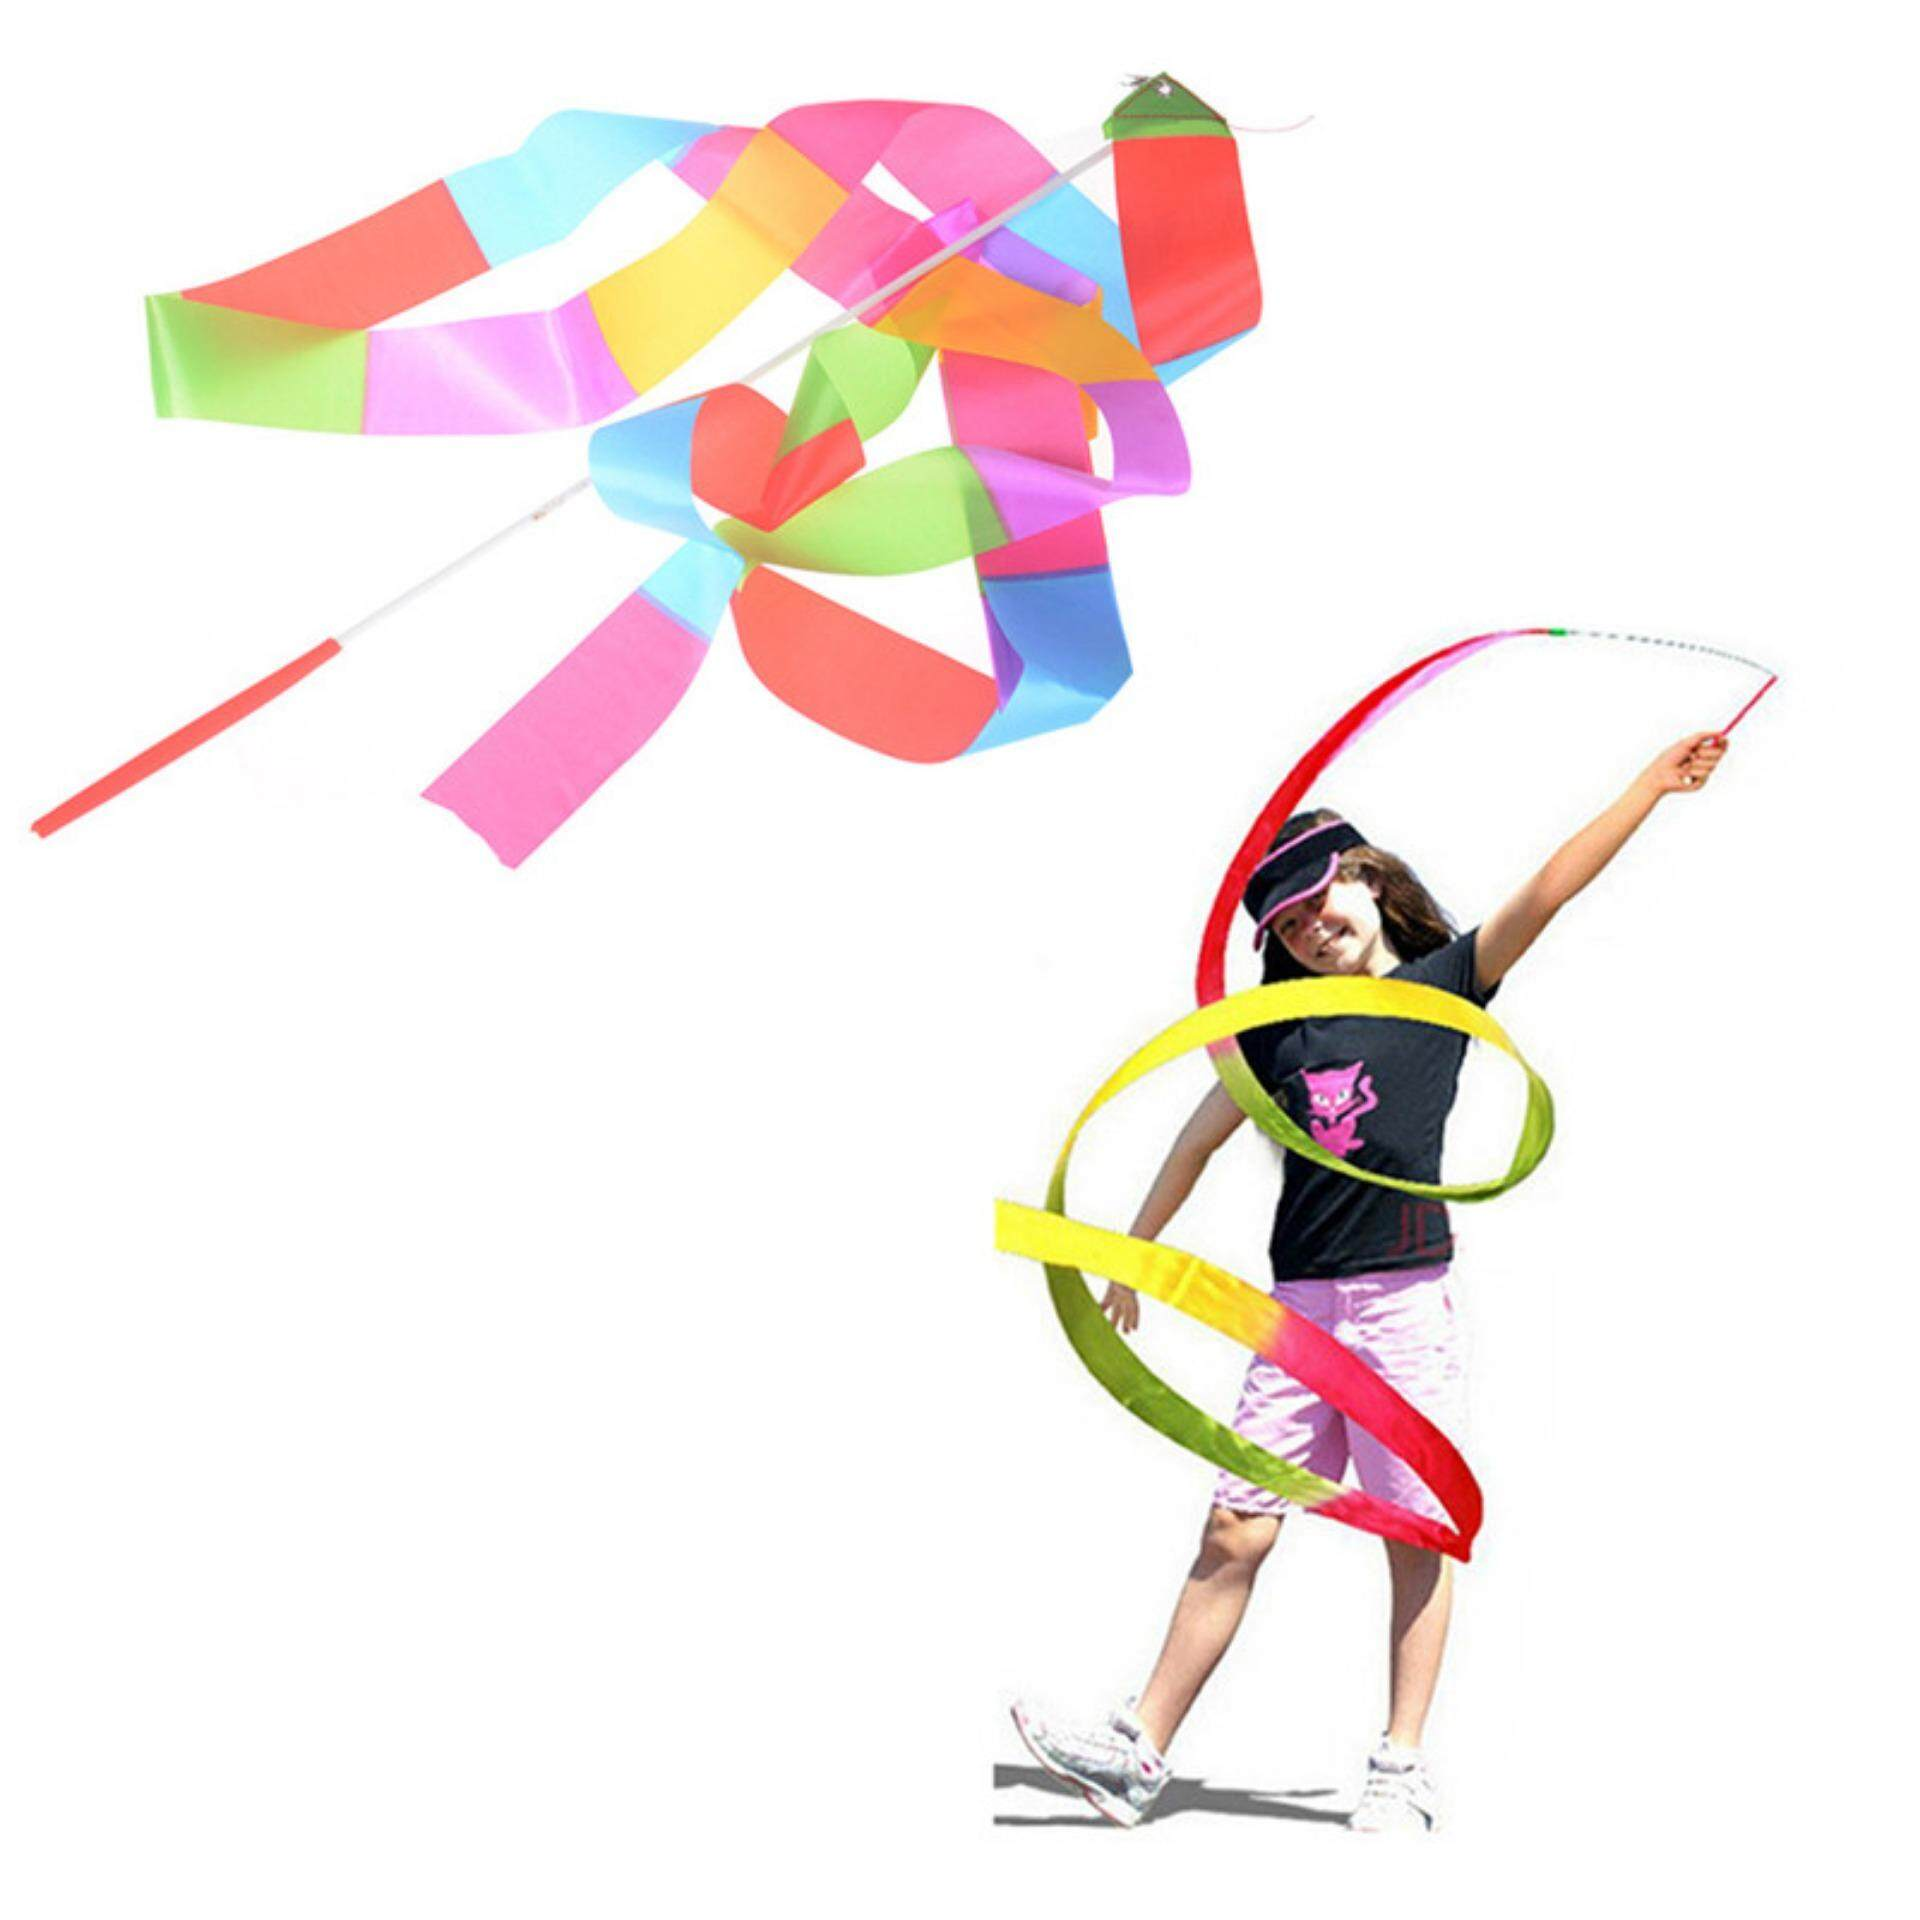 Orange Sunshine Outdoor Colorful 4m Ribbon Gymnastics Dance Dancer Toy Kid Game Sport Toy By Orange Sunshine.